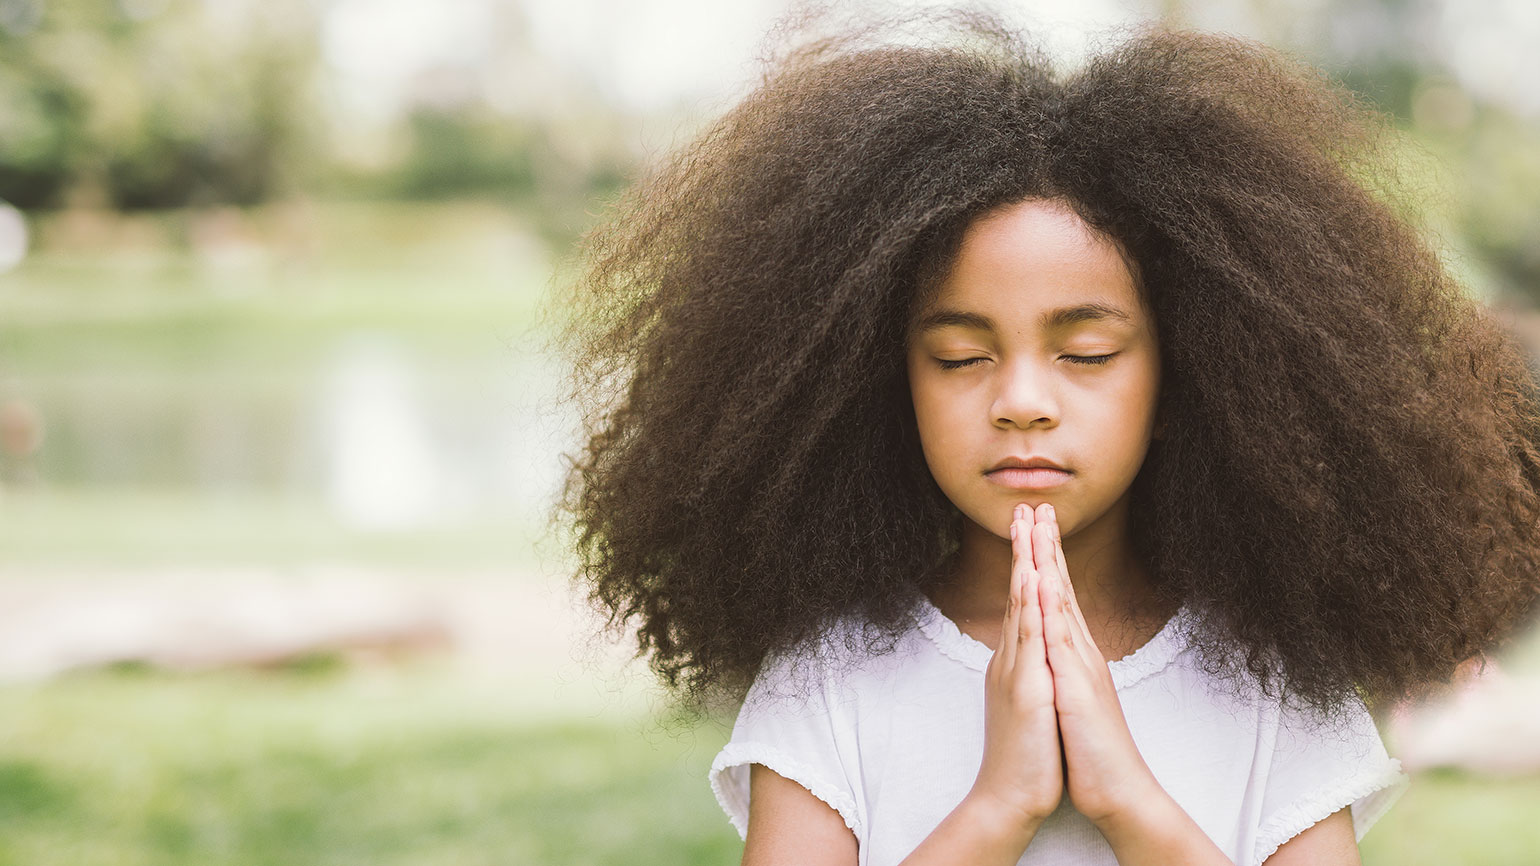 A young girl offers a prayer of thanks